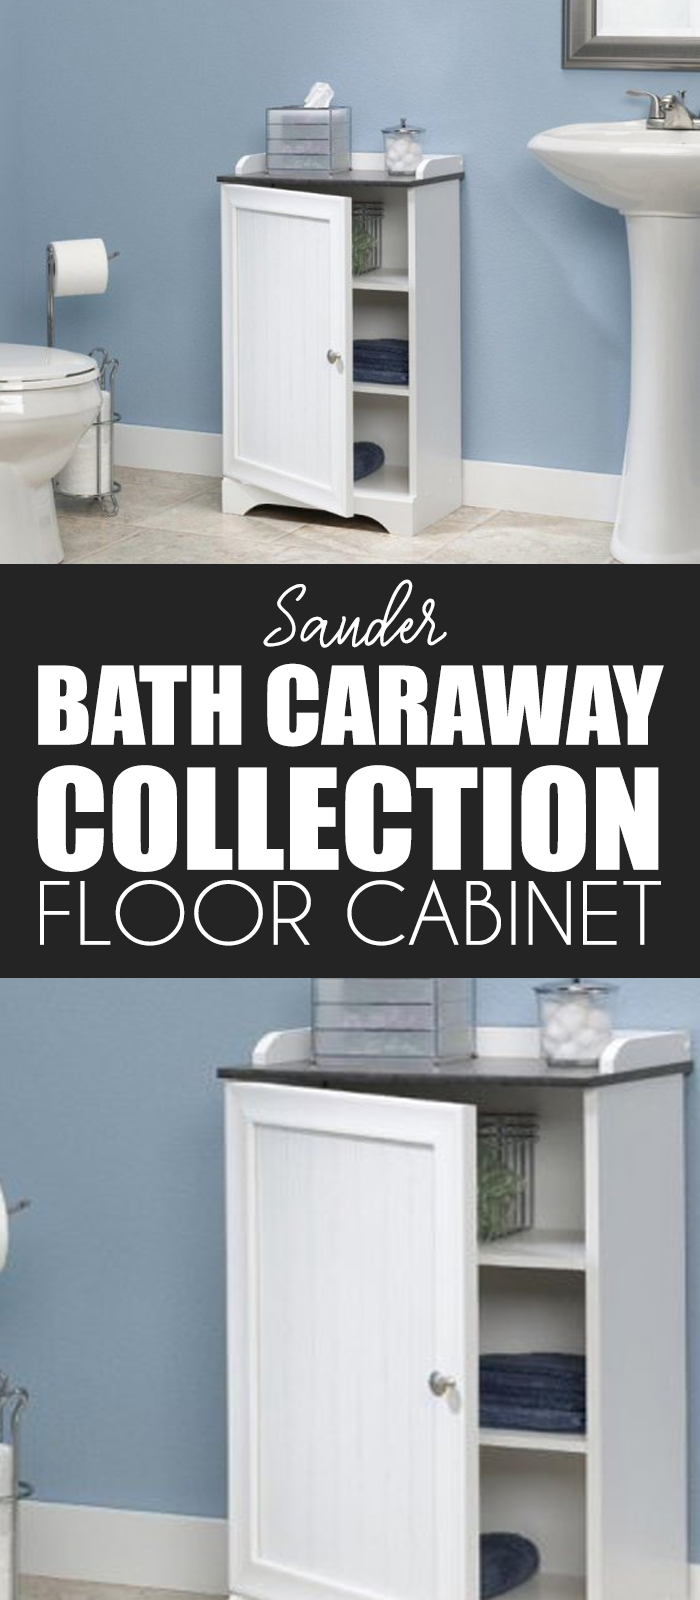 The Sauder Bath Caraway Collection Floor Cabinet Features A Frame And Panel Door With Bead Board Insert That Opens Smoothly To Reveal Not One